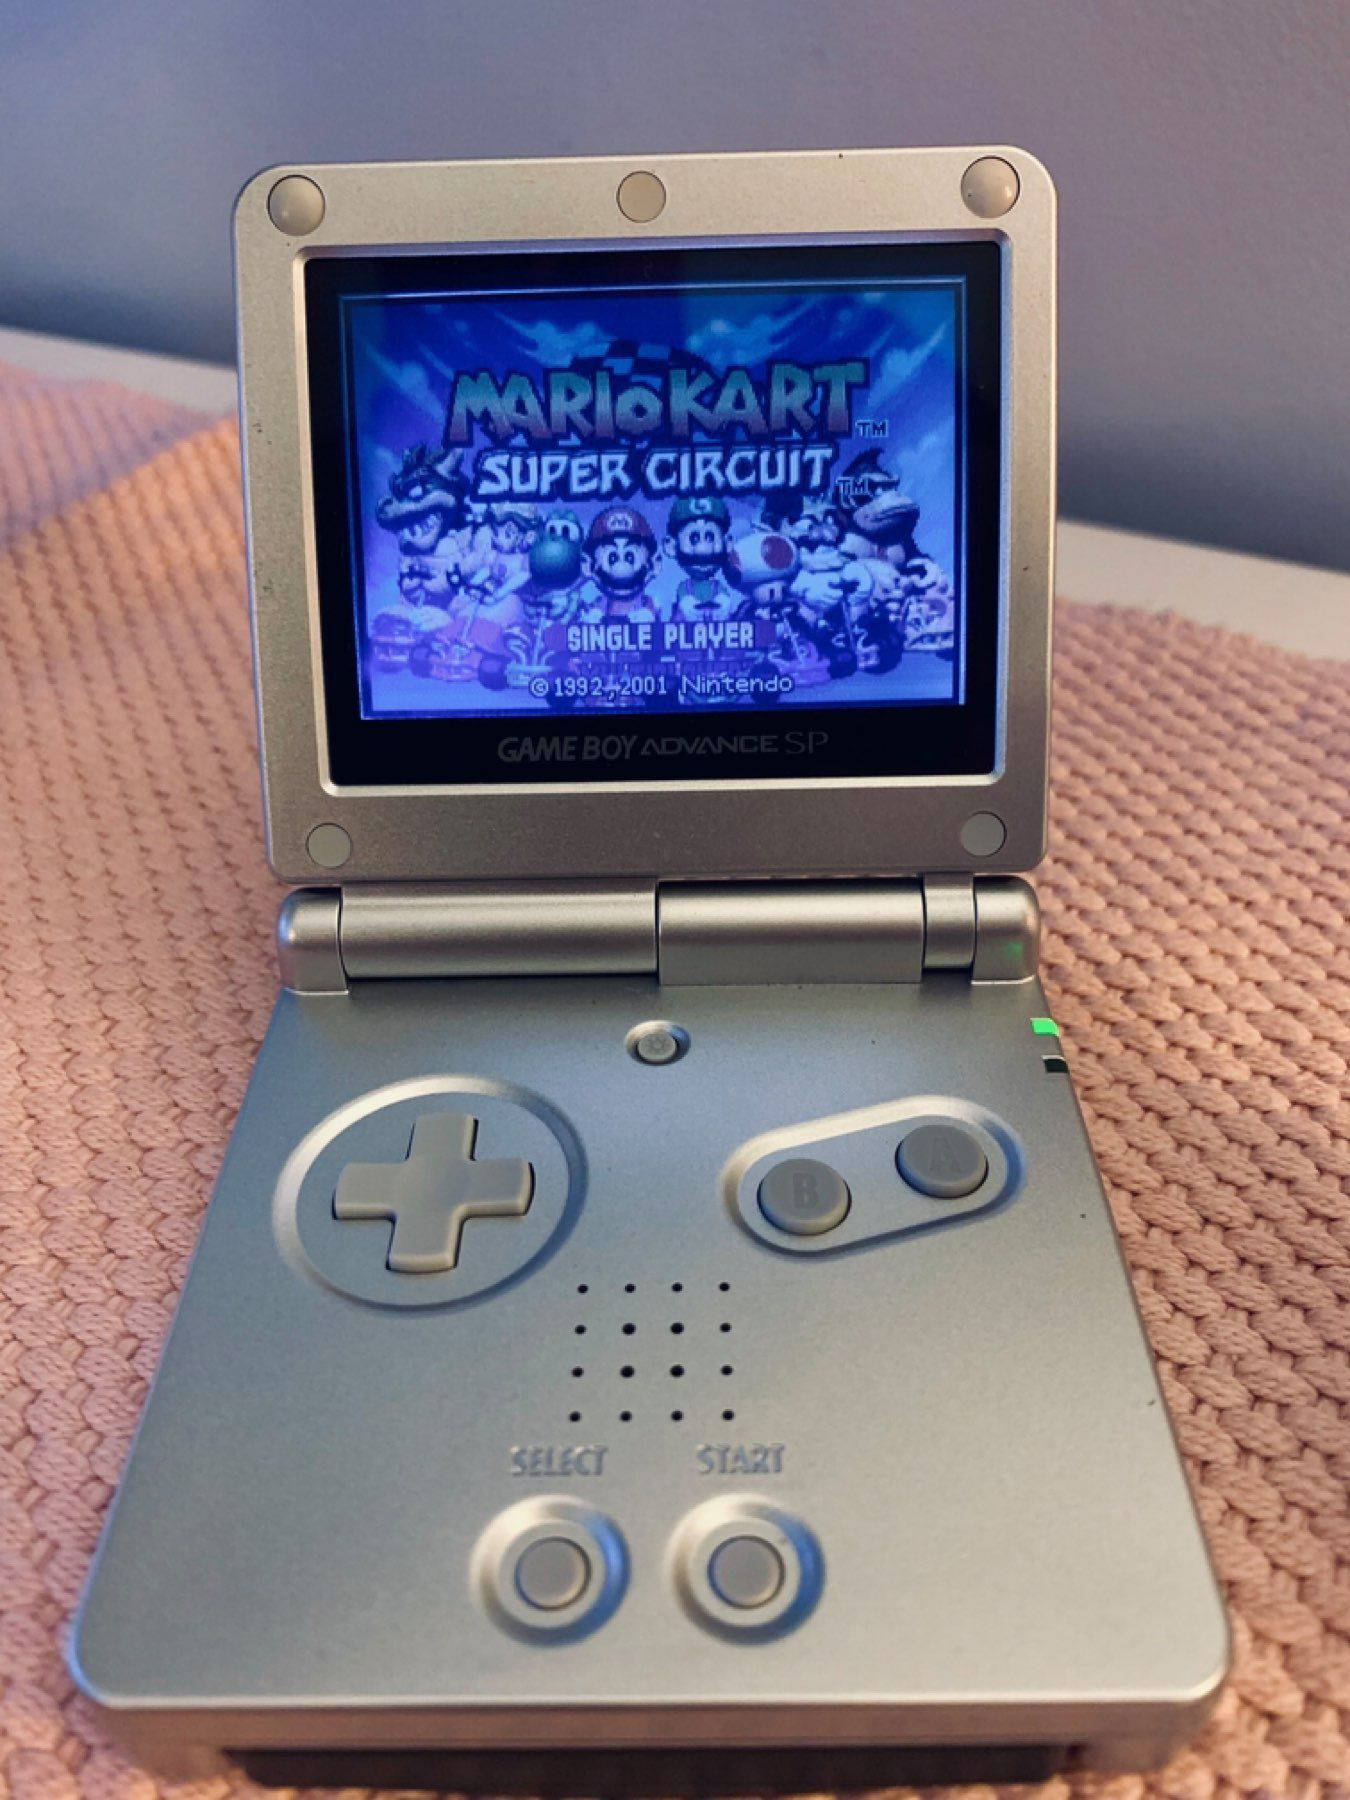 Nintendo Gameboy Advance SP. Mario Kart Super Circuit on screen.